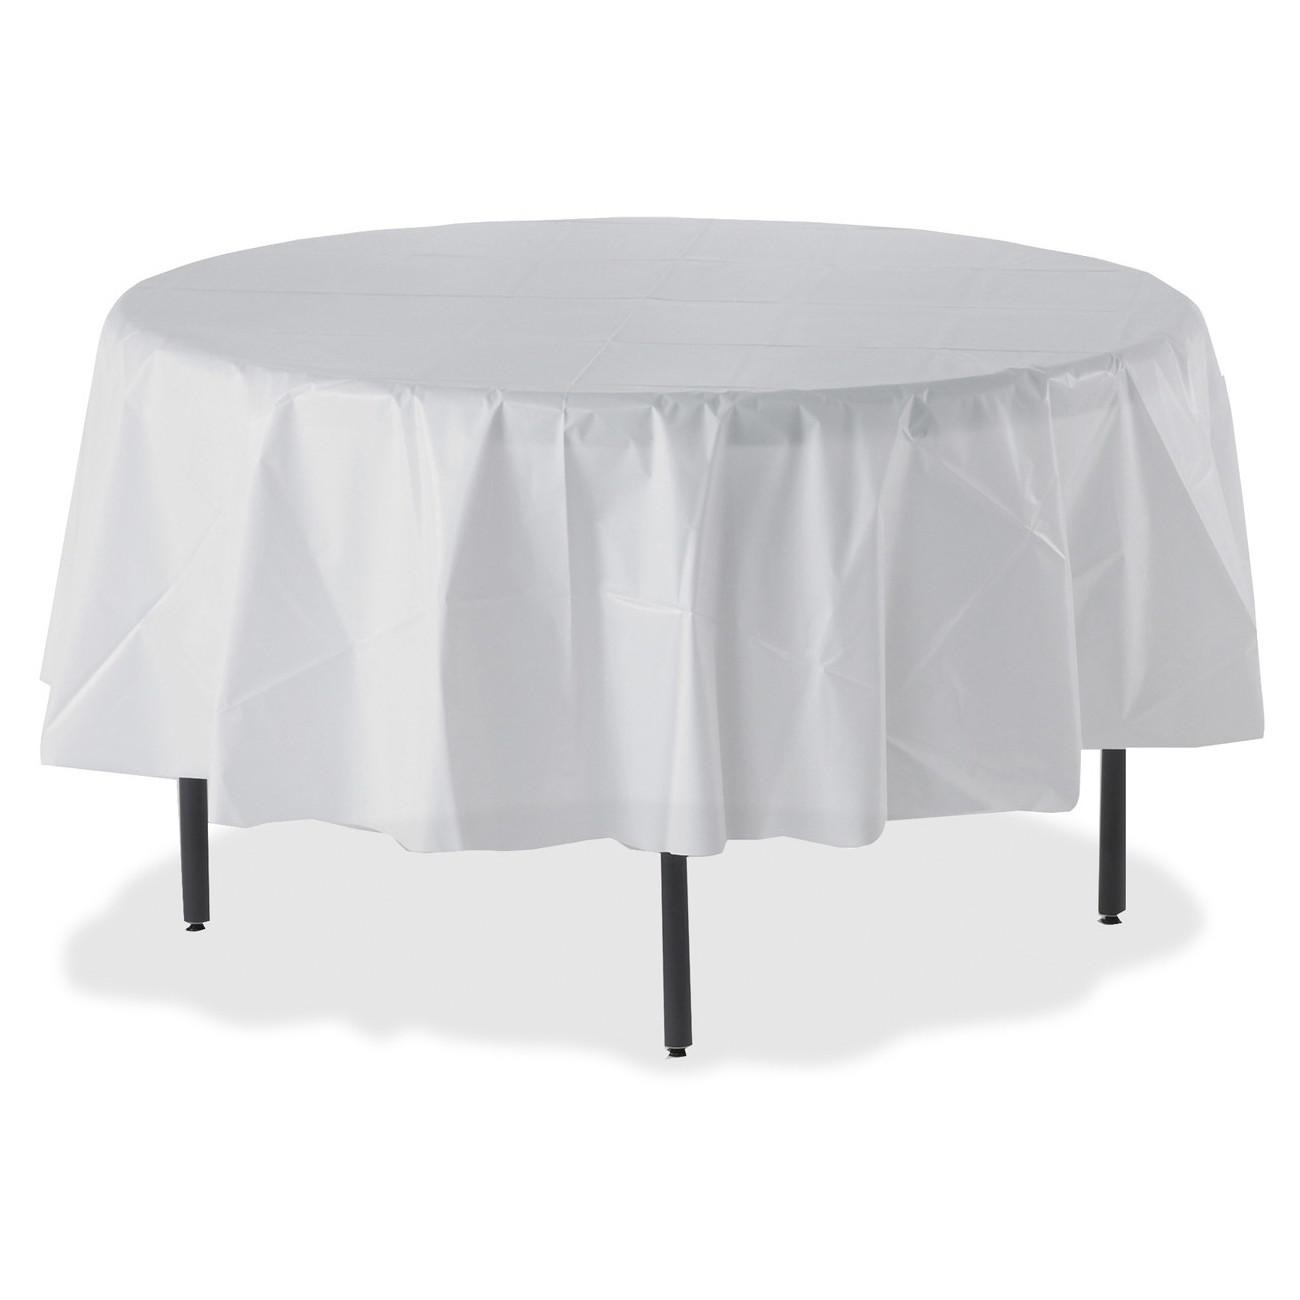 Plastic Table Covers